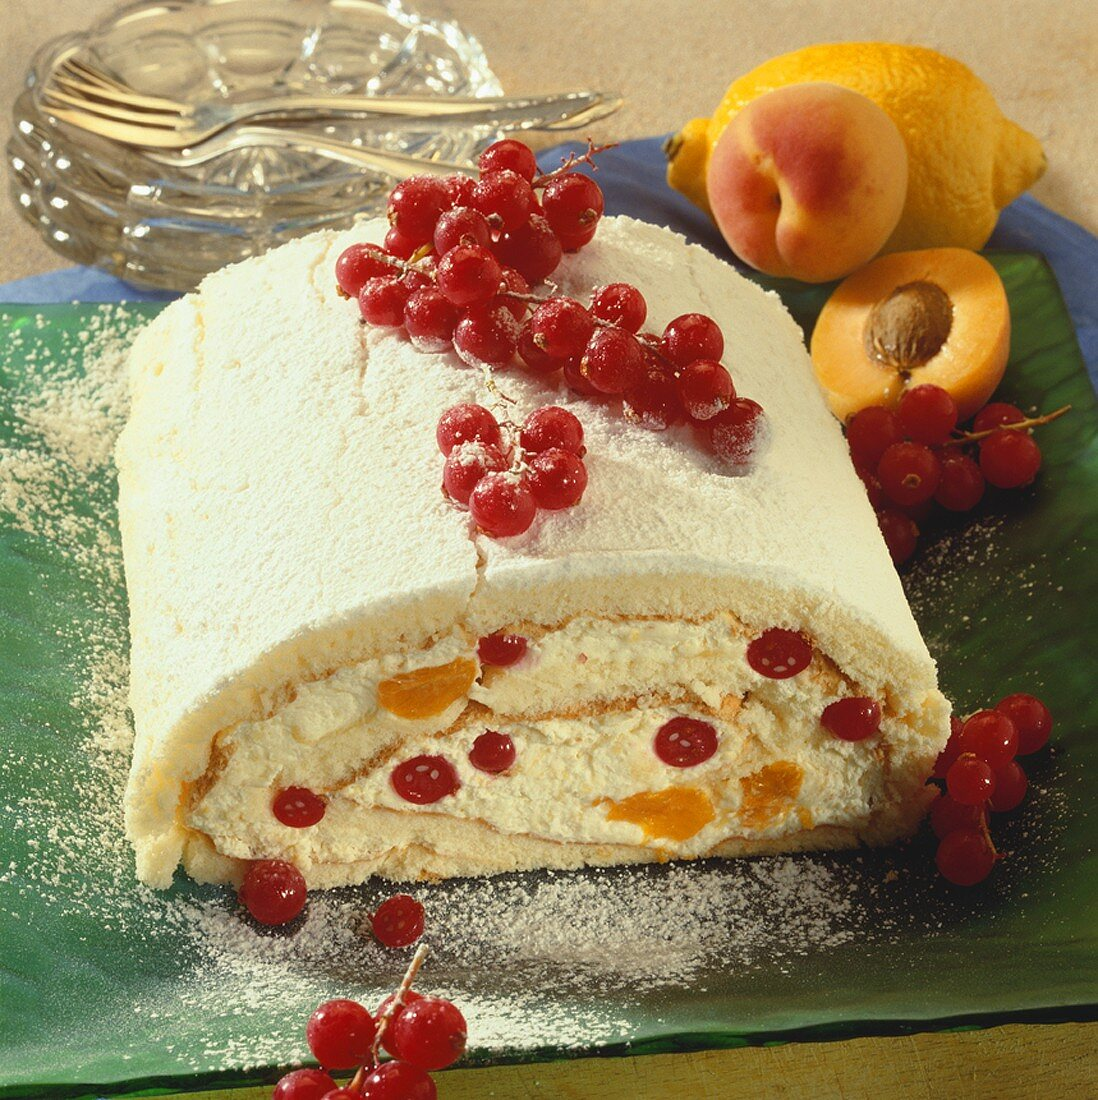 Sponge with redcurrant and apricot filling